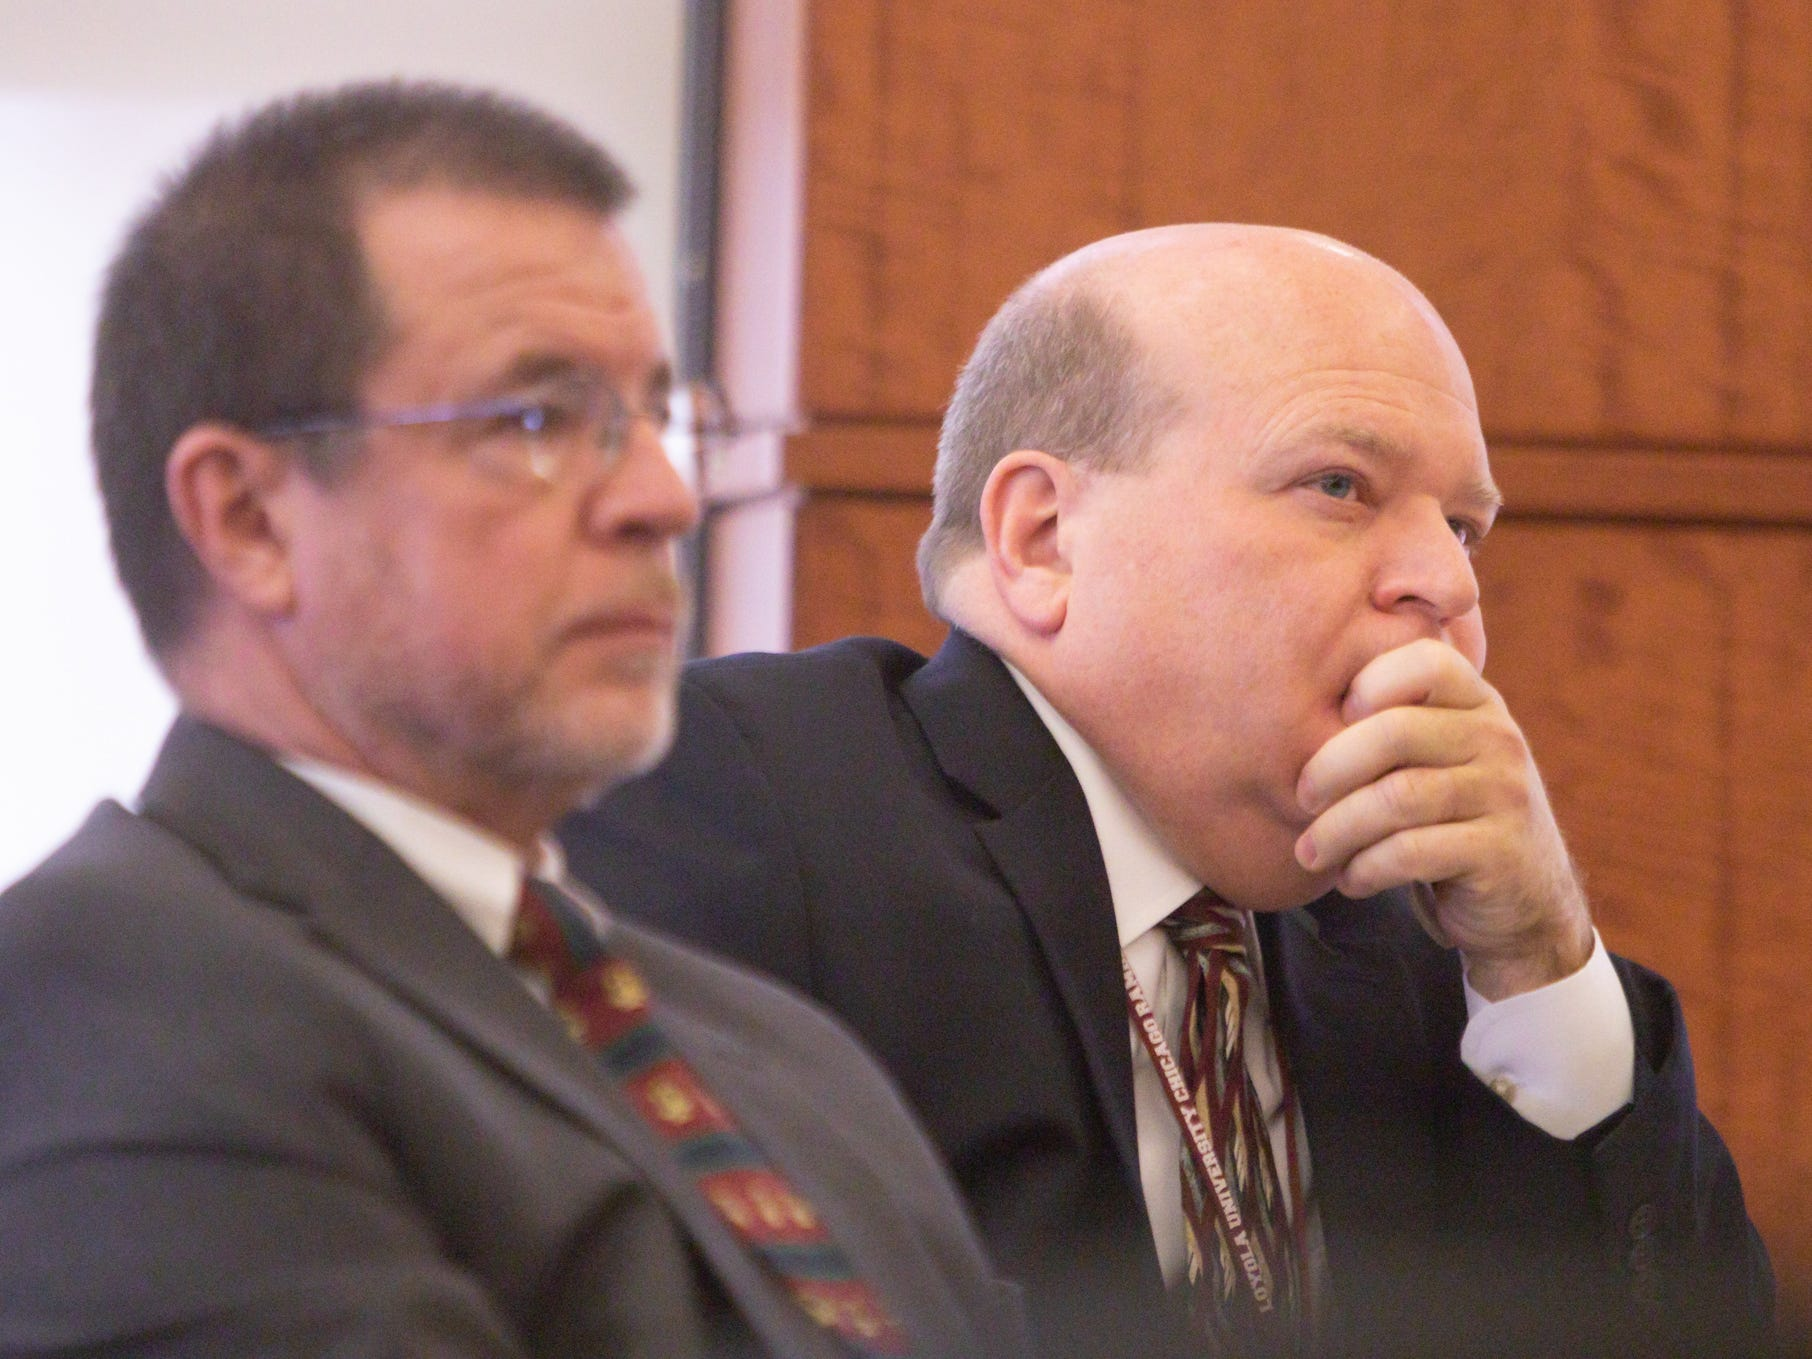 From left, Examiners Lynn Helland and Casimir Swastek listen to Dennis Kolenda, attorney for Judge Theresa Brennan during a JTC hearing Monday, March 4, 2019 in Detroit.